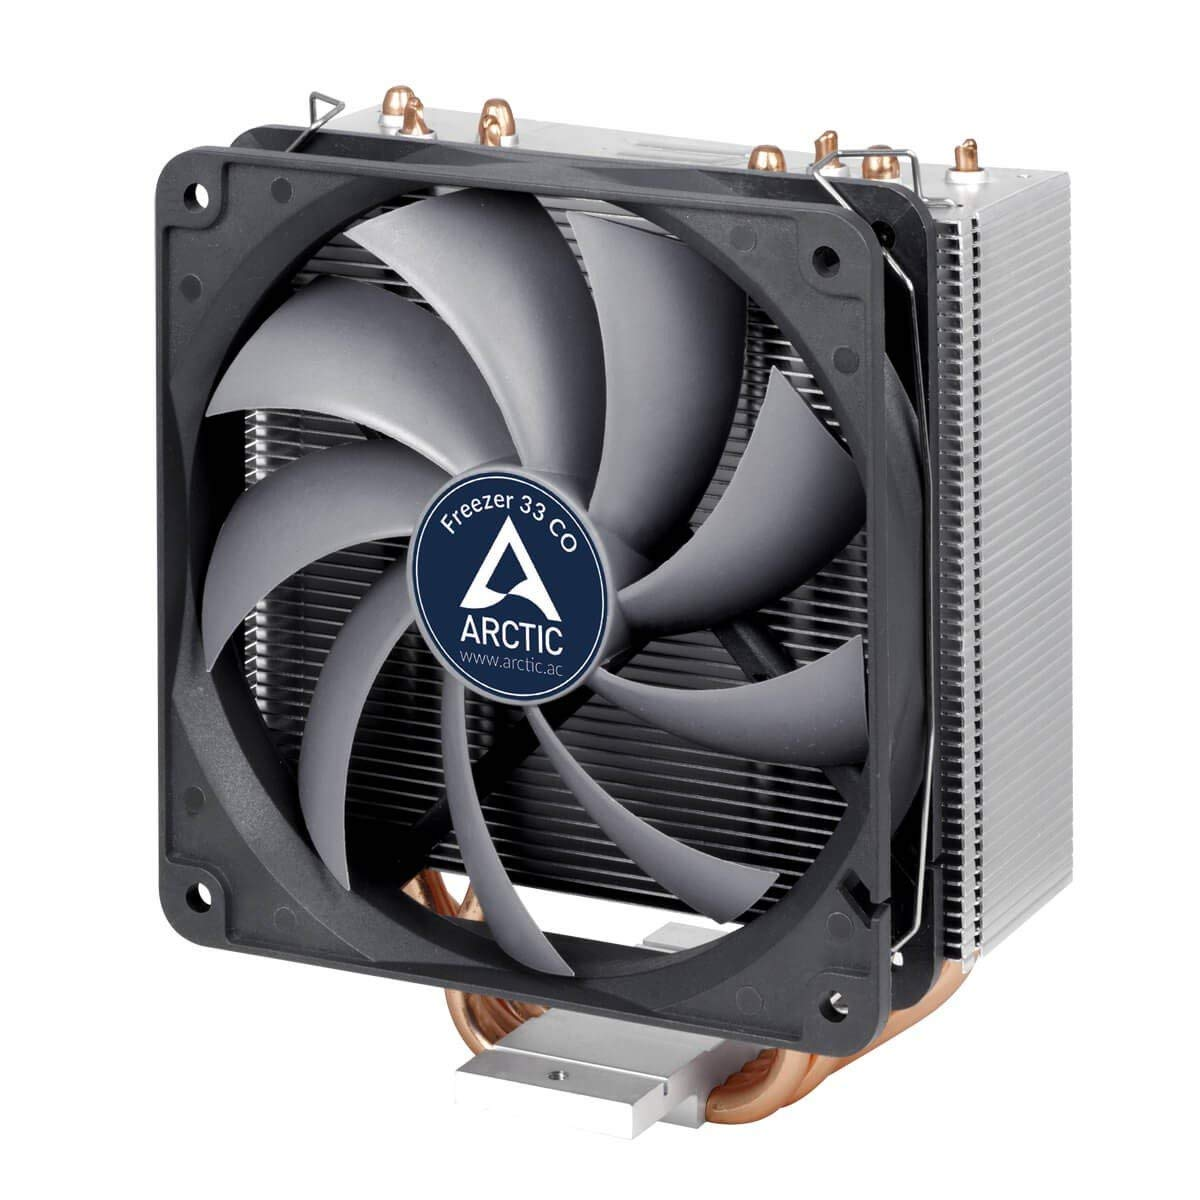 ARCTIC Freezer 33 CO - Semi Passive CPU Tower Cooler with Dual Ball Bearing 120 mm PWM Fan for Intel 115X/2011-3 & AMD AM4 - German Semi Passive Fan Controller - PWM Sharing Technology (PST)